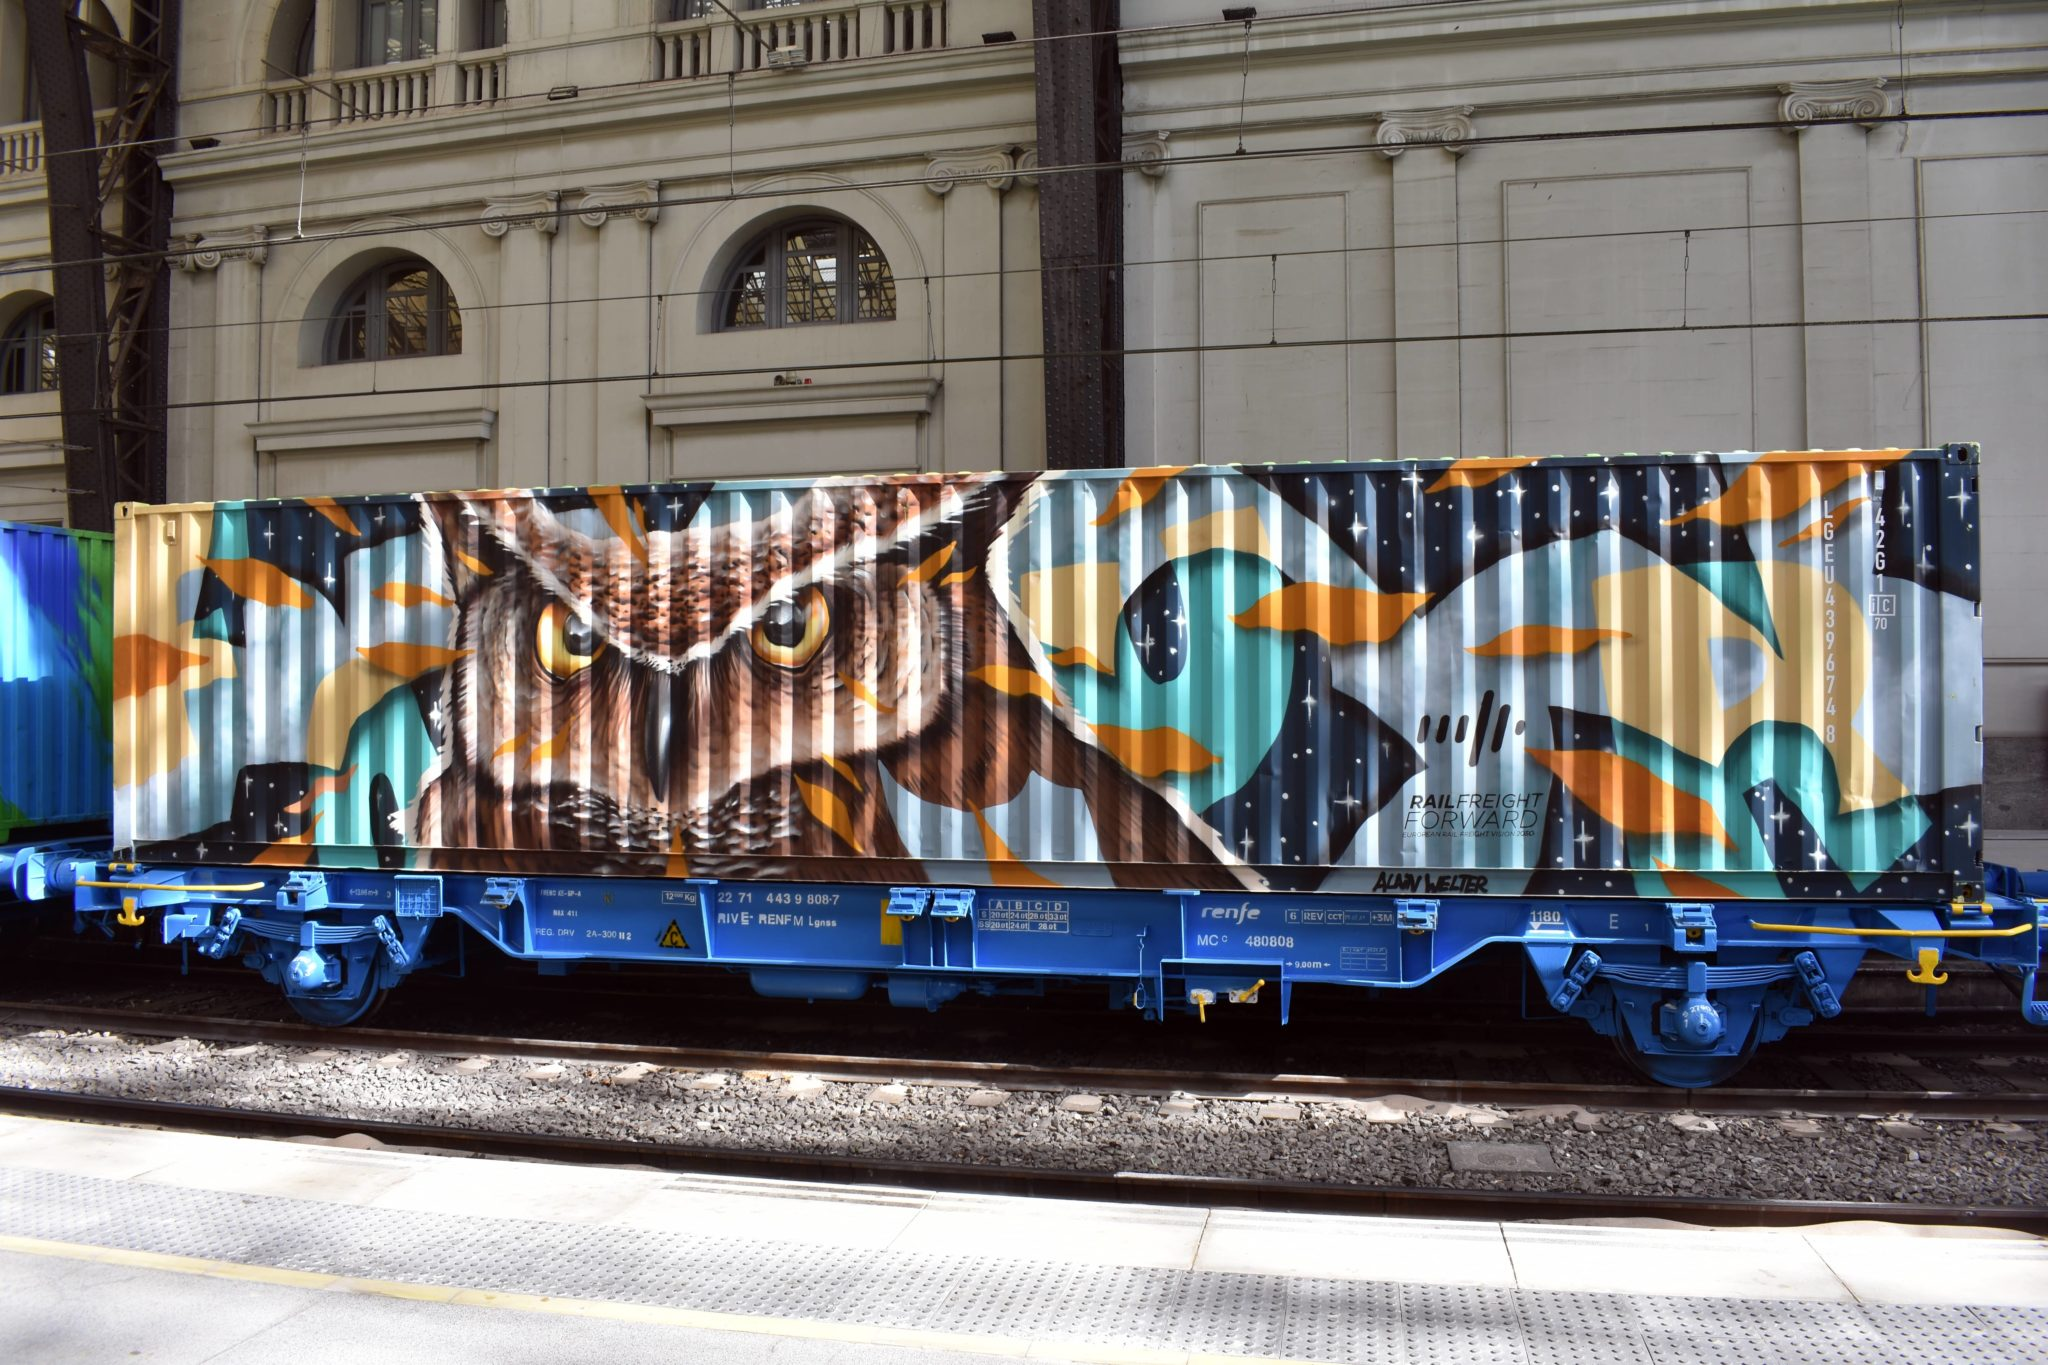 Alain Welter Noah's train Street art